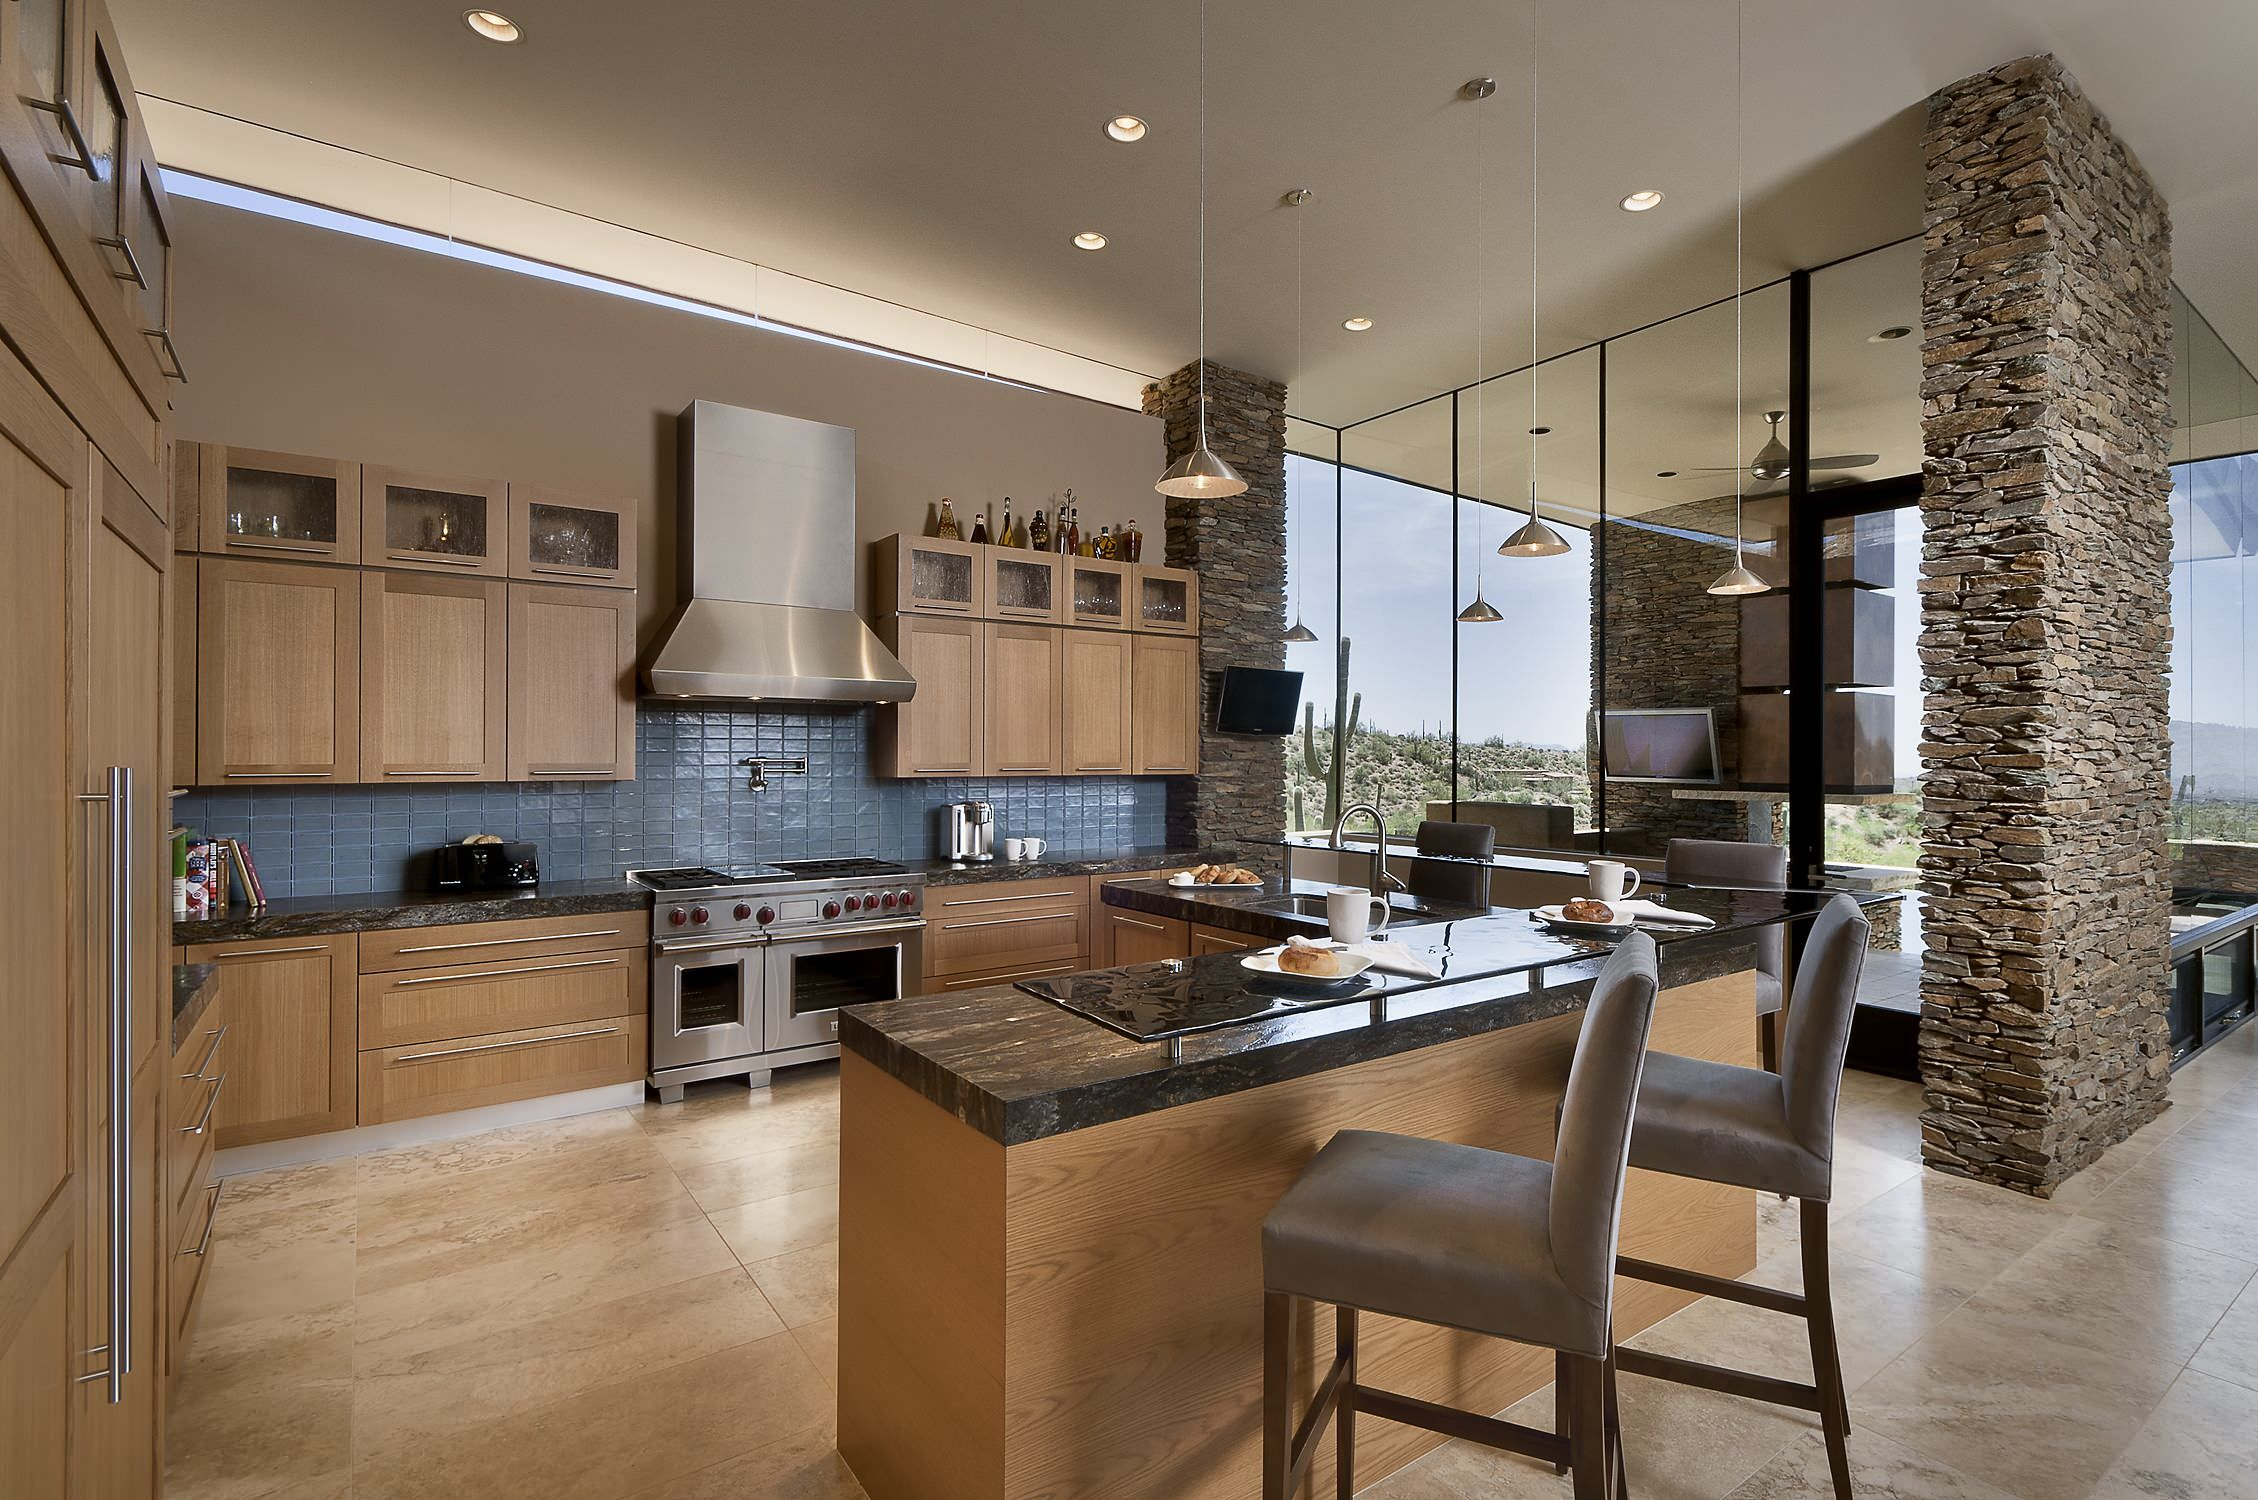 27 southwest kitchen designs and ideas with images modern kitchen design kitchen layout on l kitchen remodel id=74732